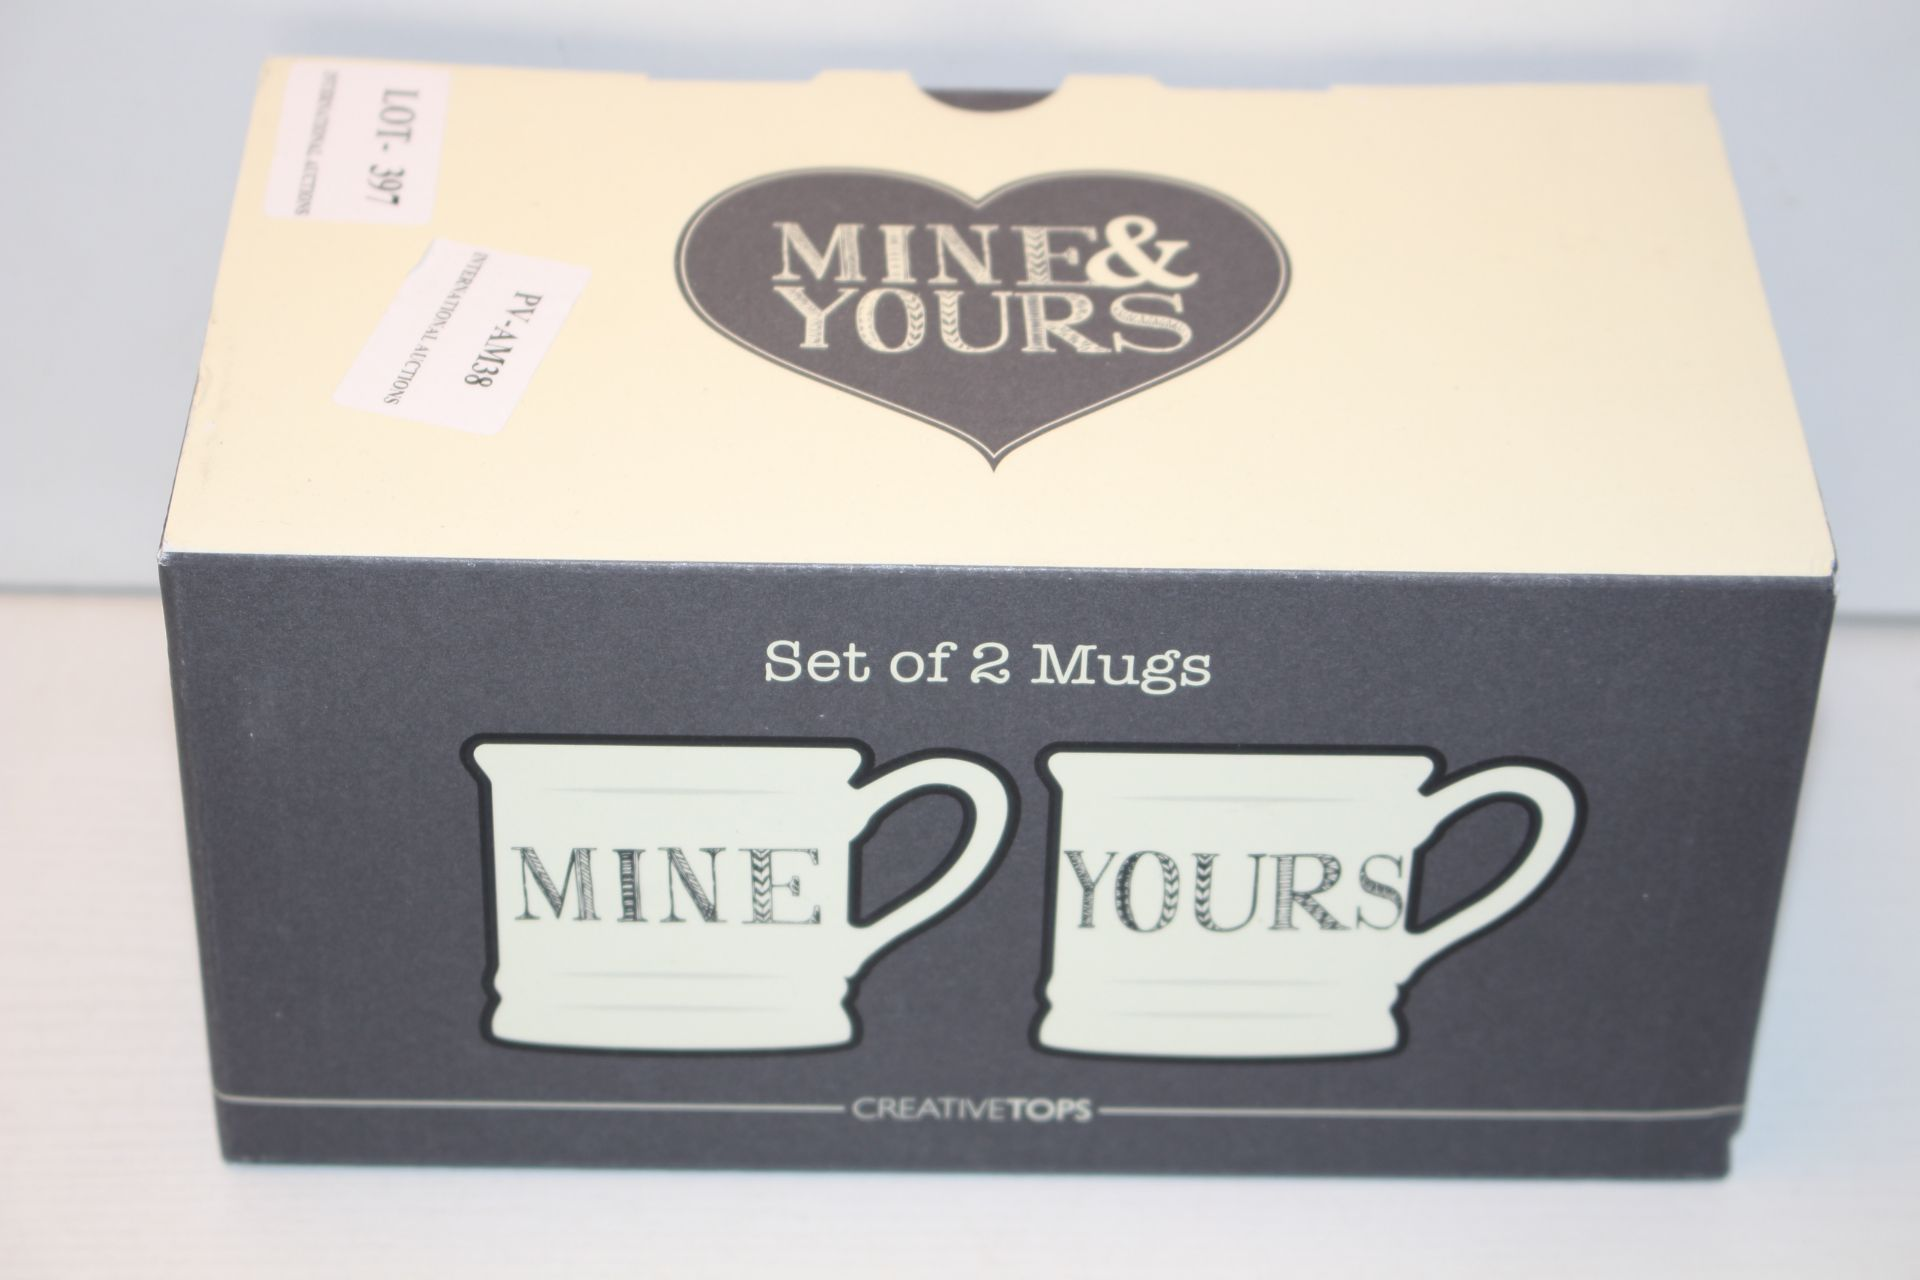 BOXED MINE - YOURS SET OF TWO MUGS Condition ReportAppraisal Available on Request- All Items are